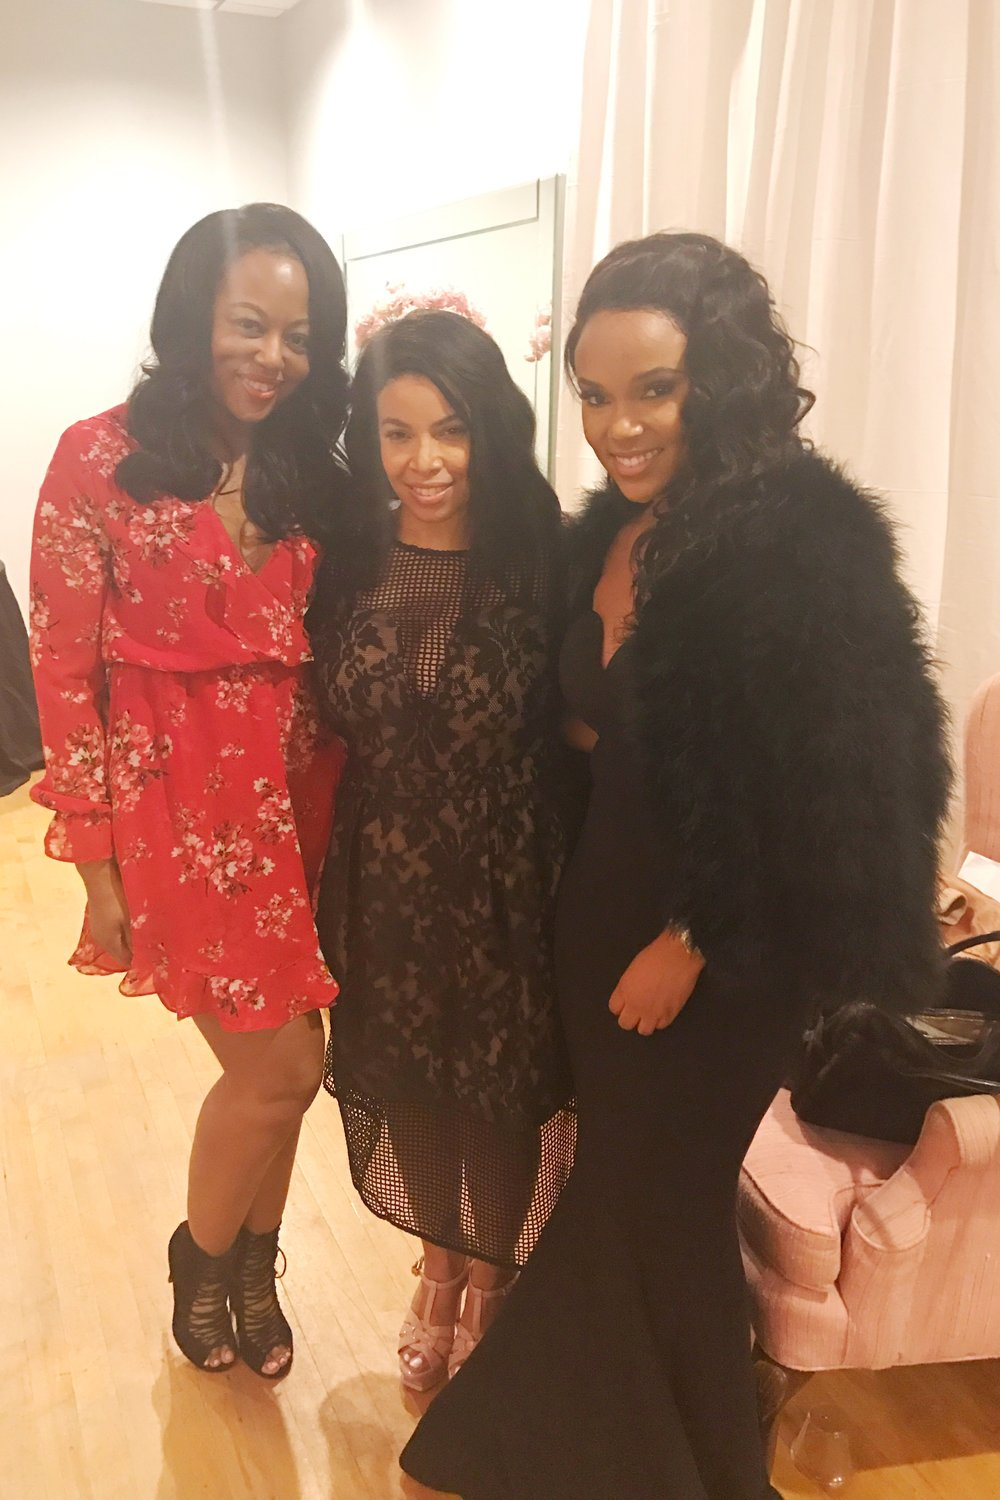 Myself, Neffi Walker Owner of design firm Le Noir Home and Nicole of House of Chic LA